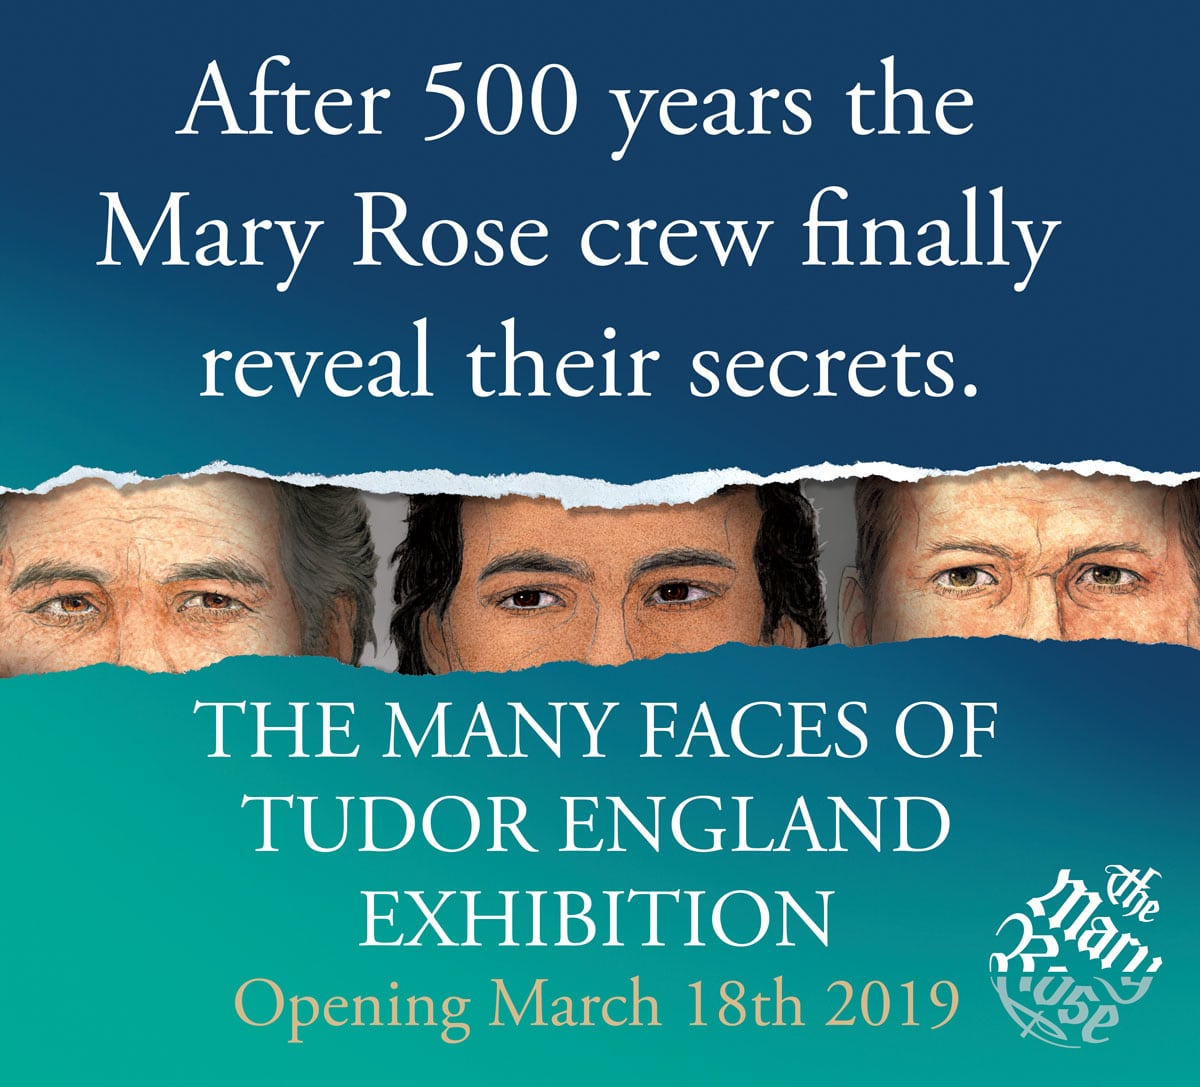 Many Faces of Tudor England